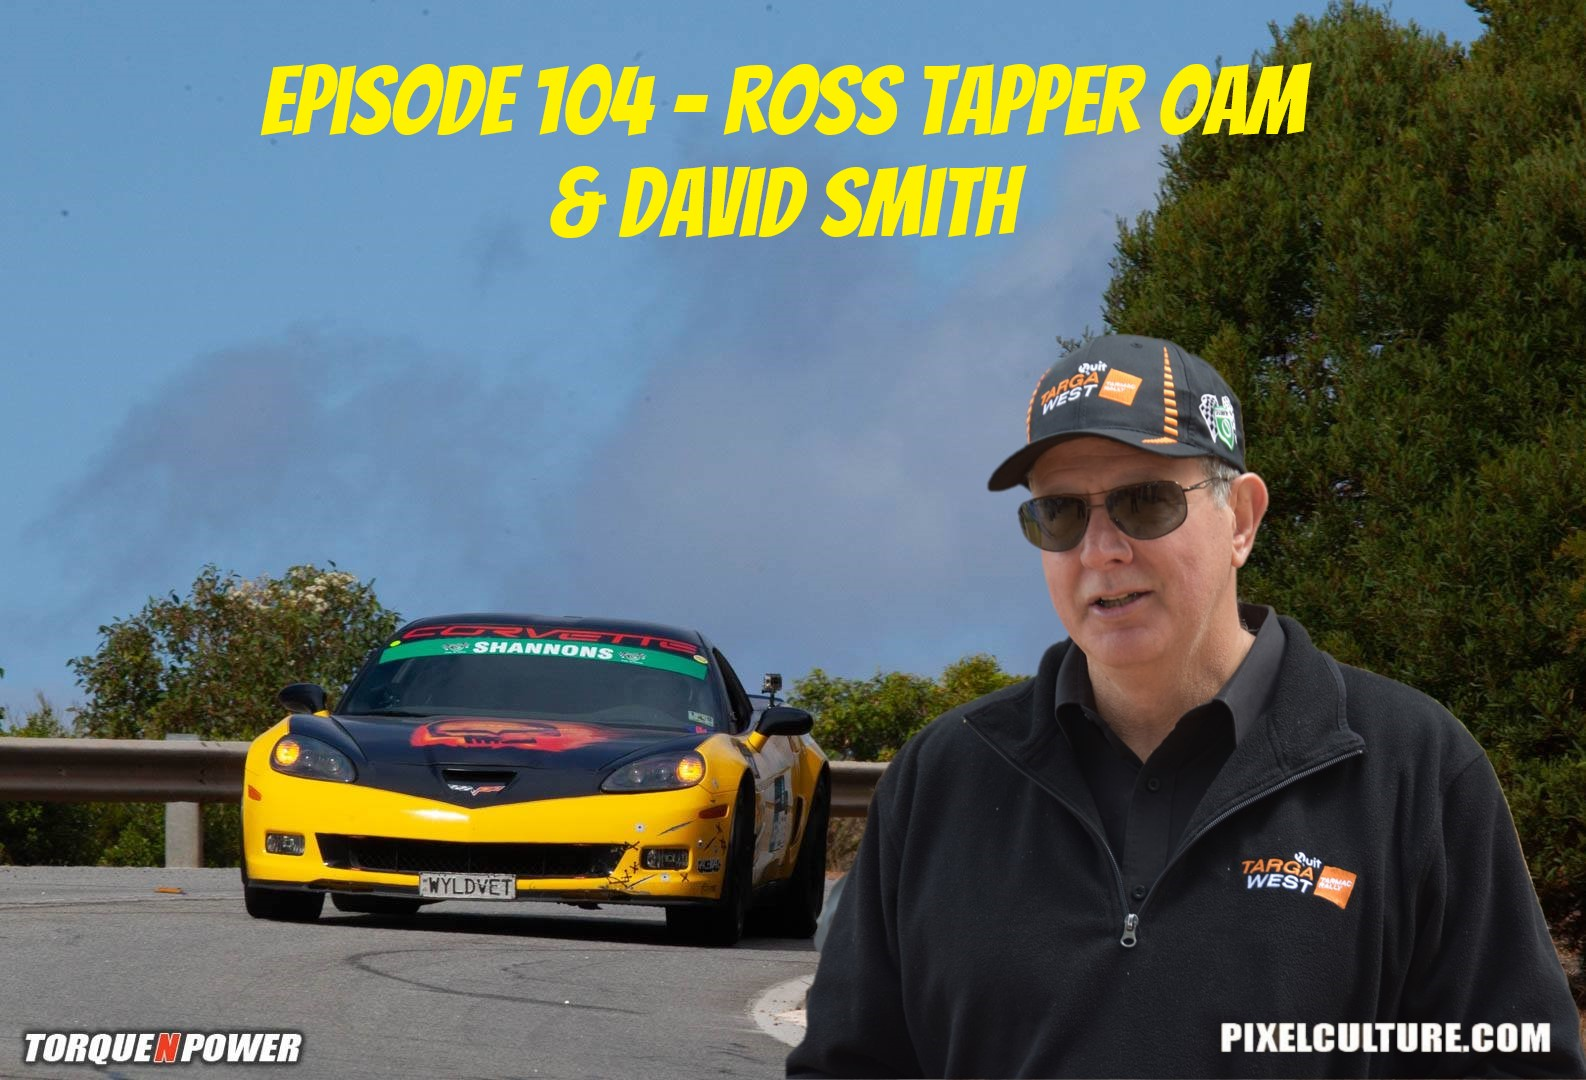 Episode 104 – Ross Tapper OAM and David Smith Targa West Albany Sprint Preview